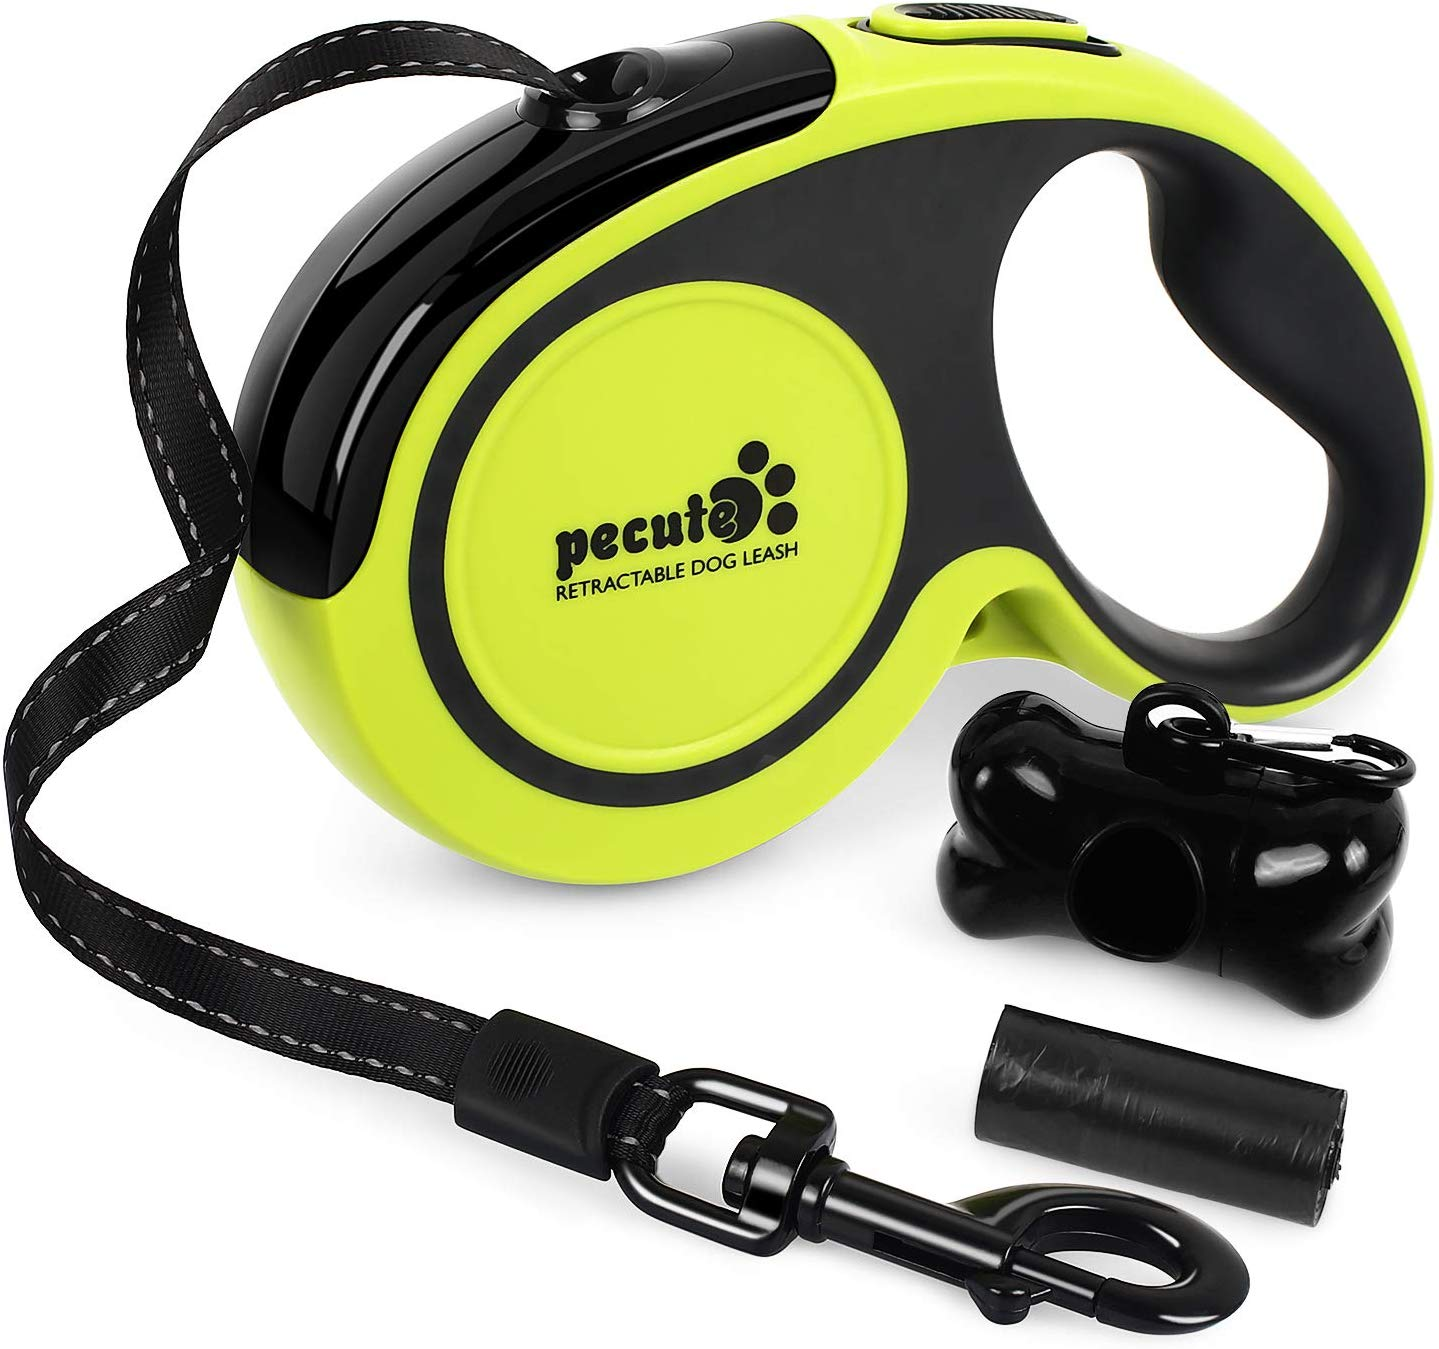 Pecute Retractable Dog Lead – Easy One Button Brake & Lock – Extends up to 16 Feet of Freedom